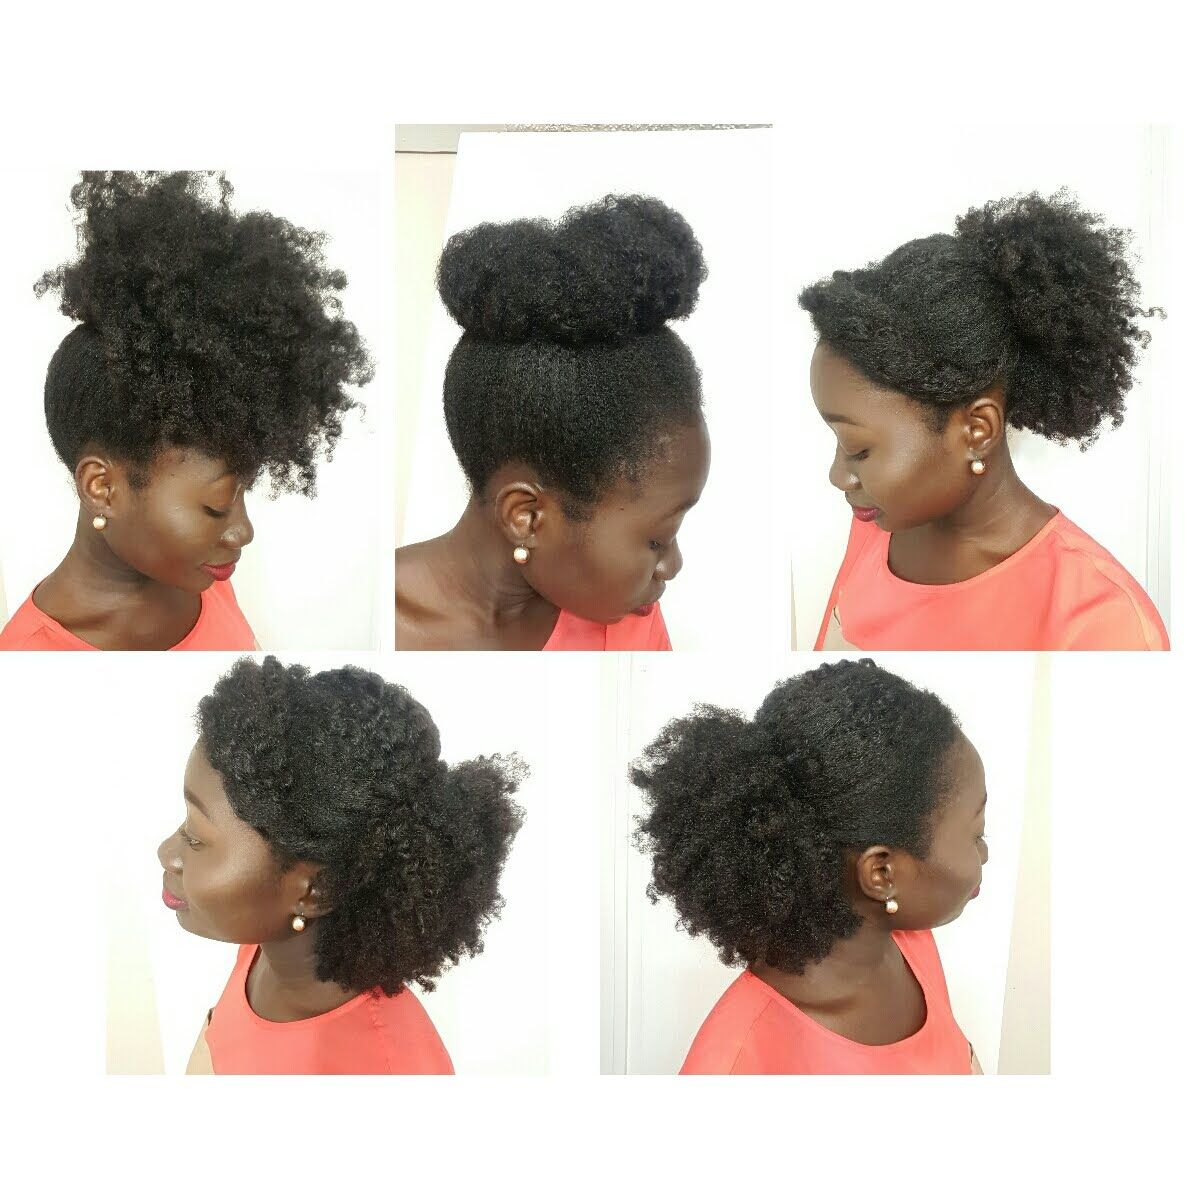 5 simple natural hair styles medium length my roots black hair 5 simple natural hair styles medium length urmus Image collections